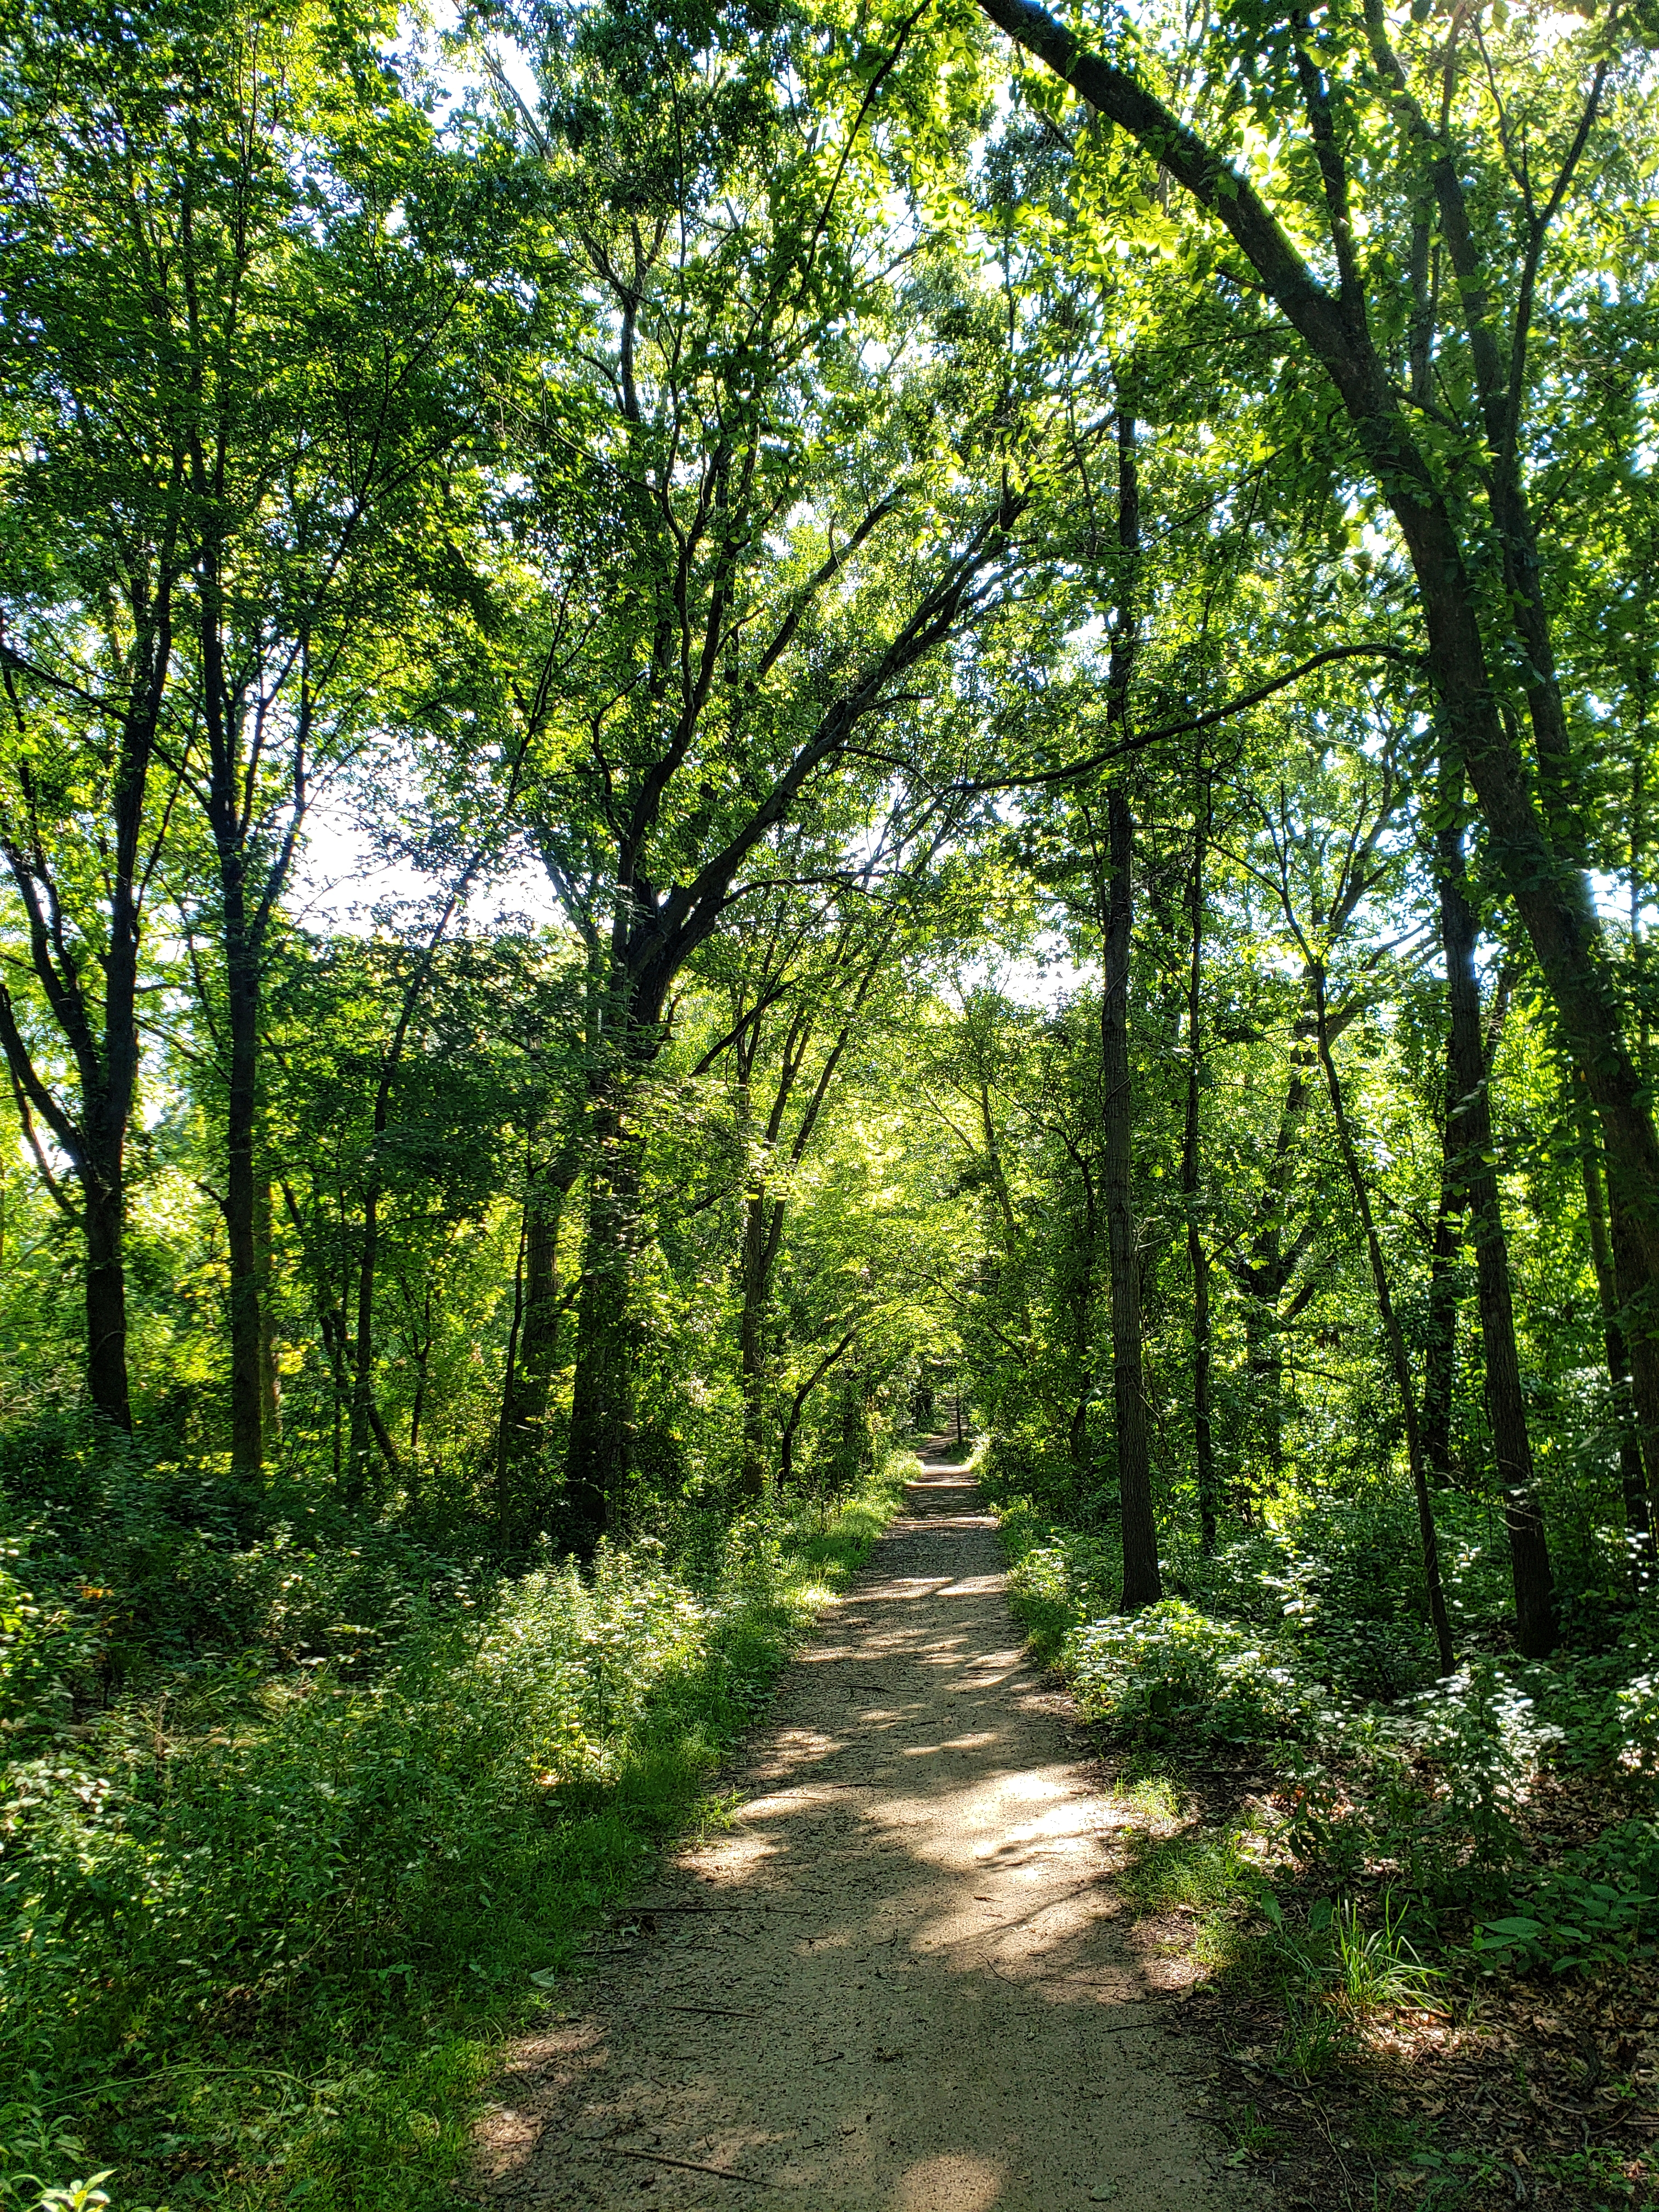 the hiking trail travels through several different wooded areas.